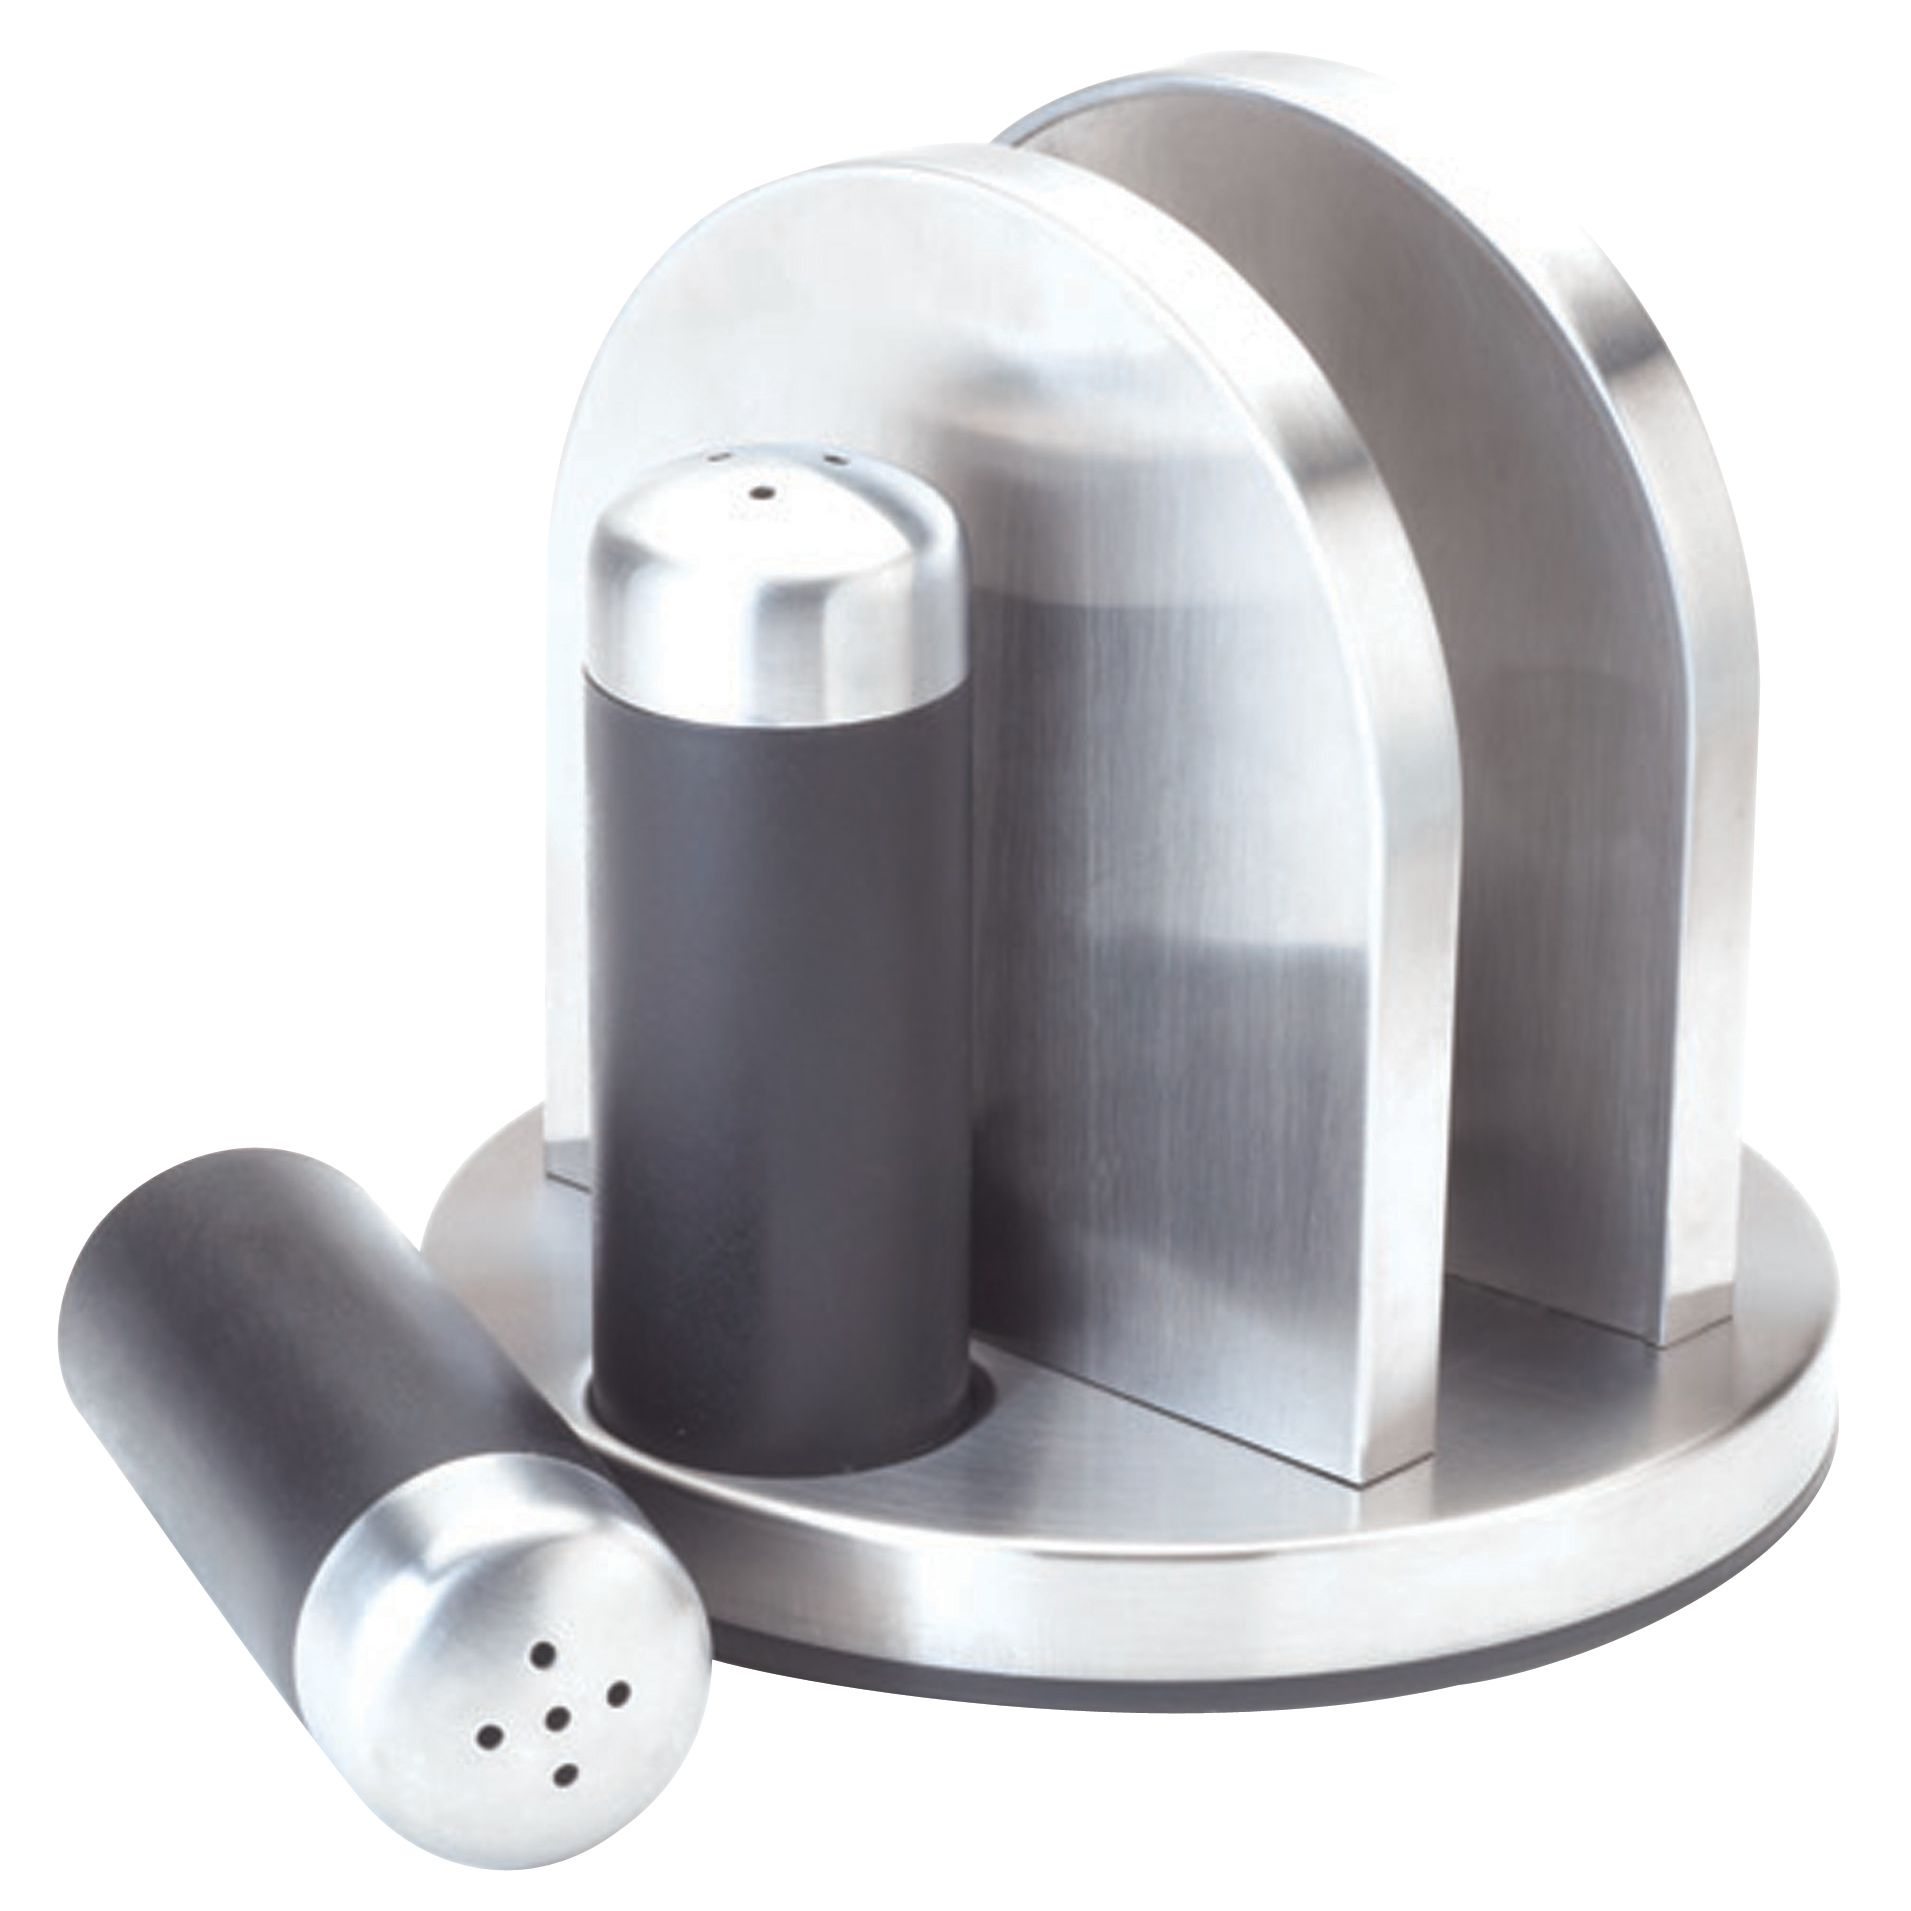 Stainless Steel Napkin Holder Foter